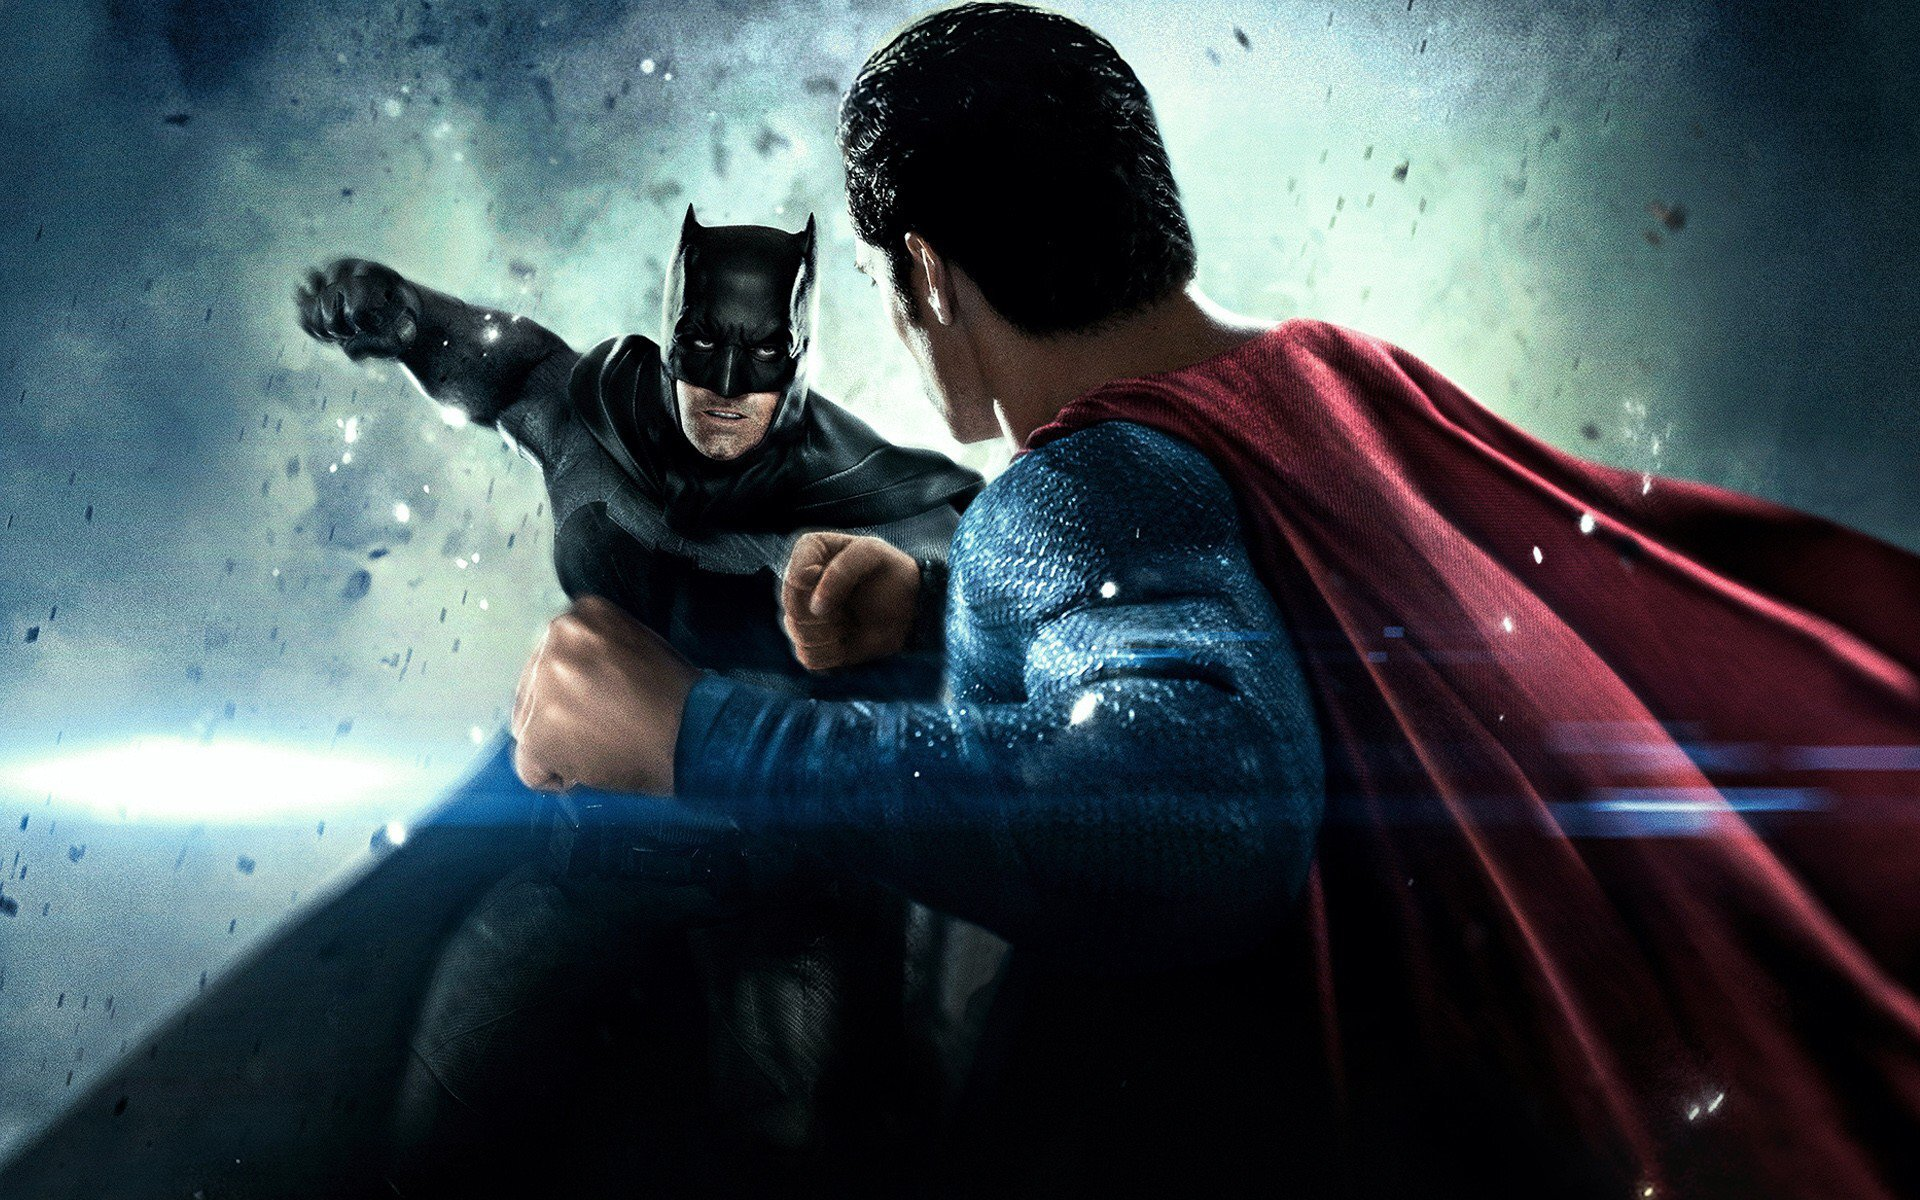 hd-batman-v-superman-dawn-of-justice-movie.jpg